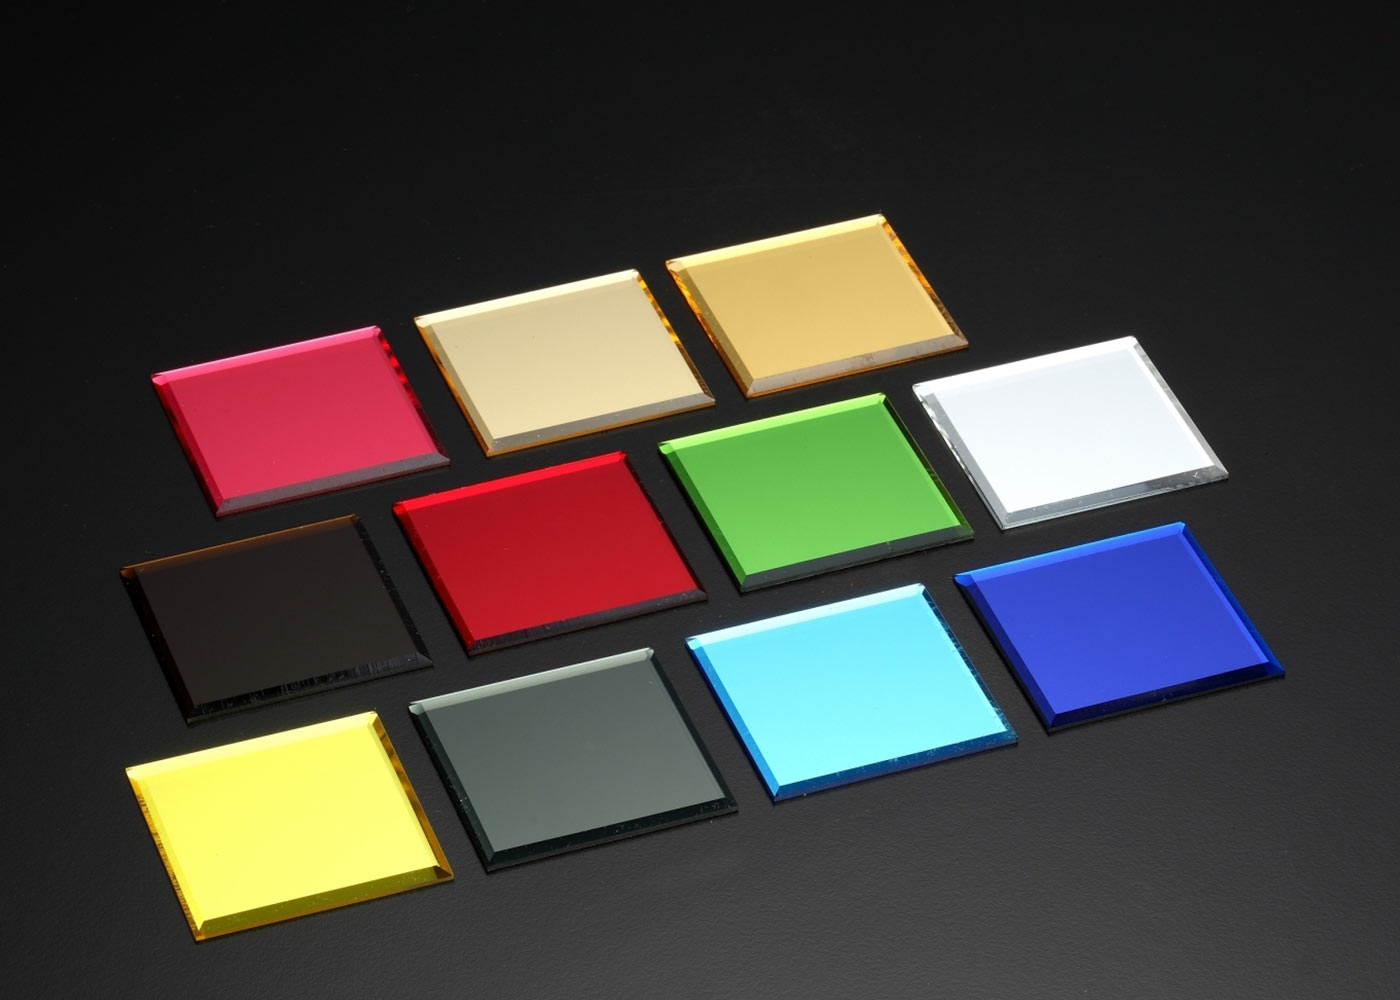 Colored Mirrors